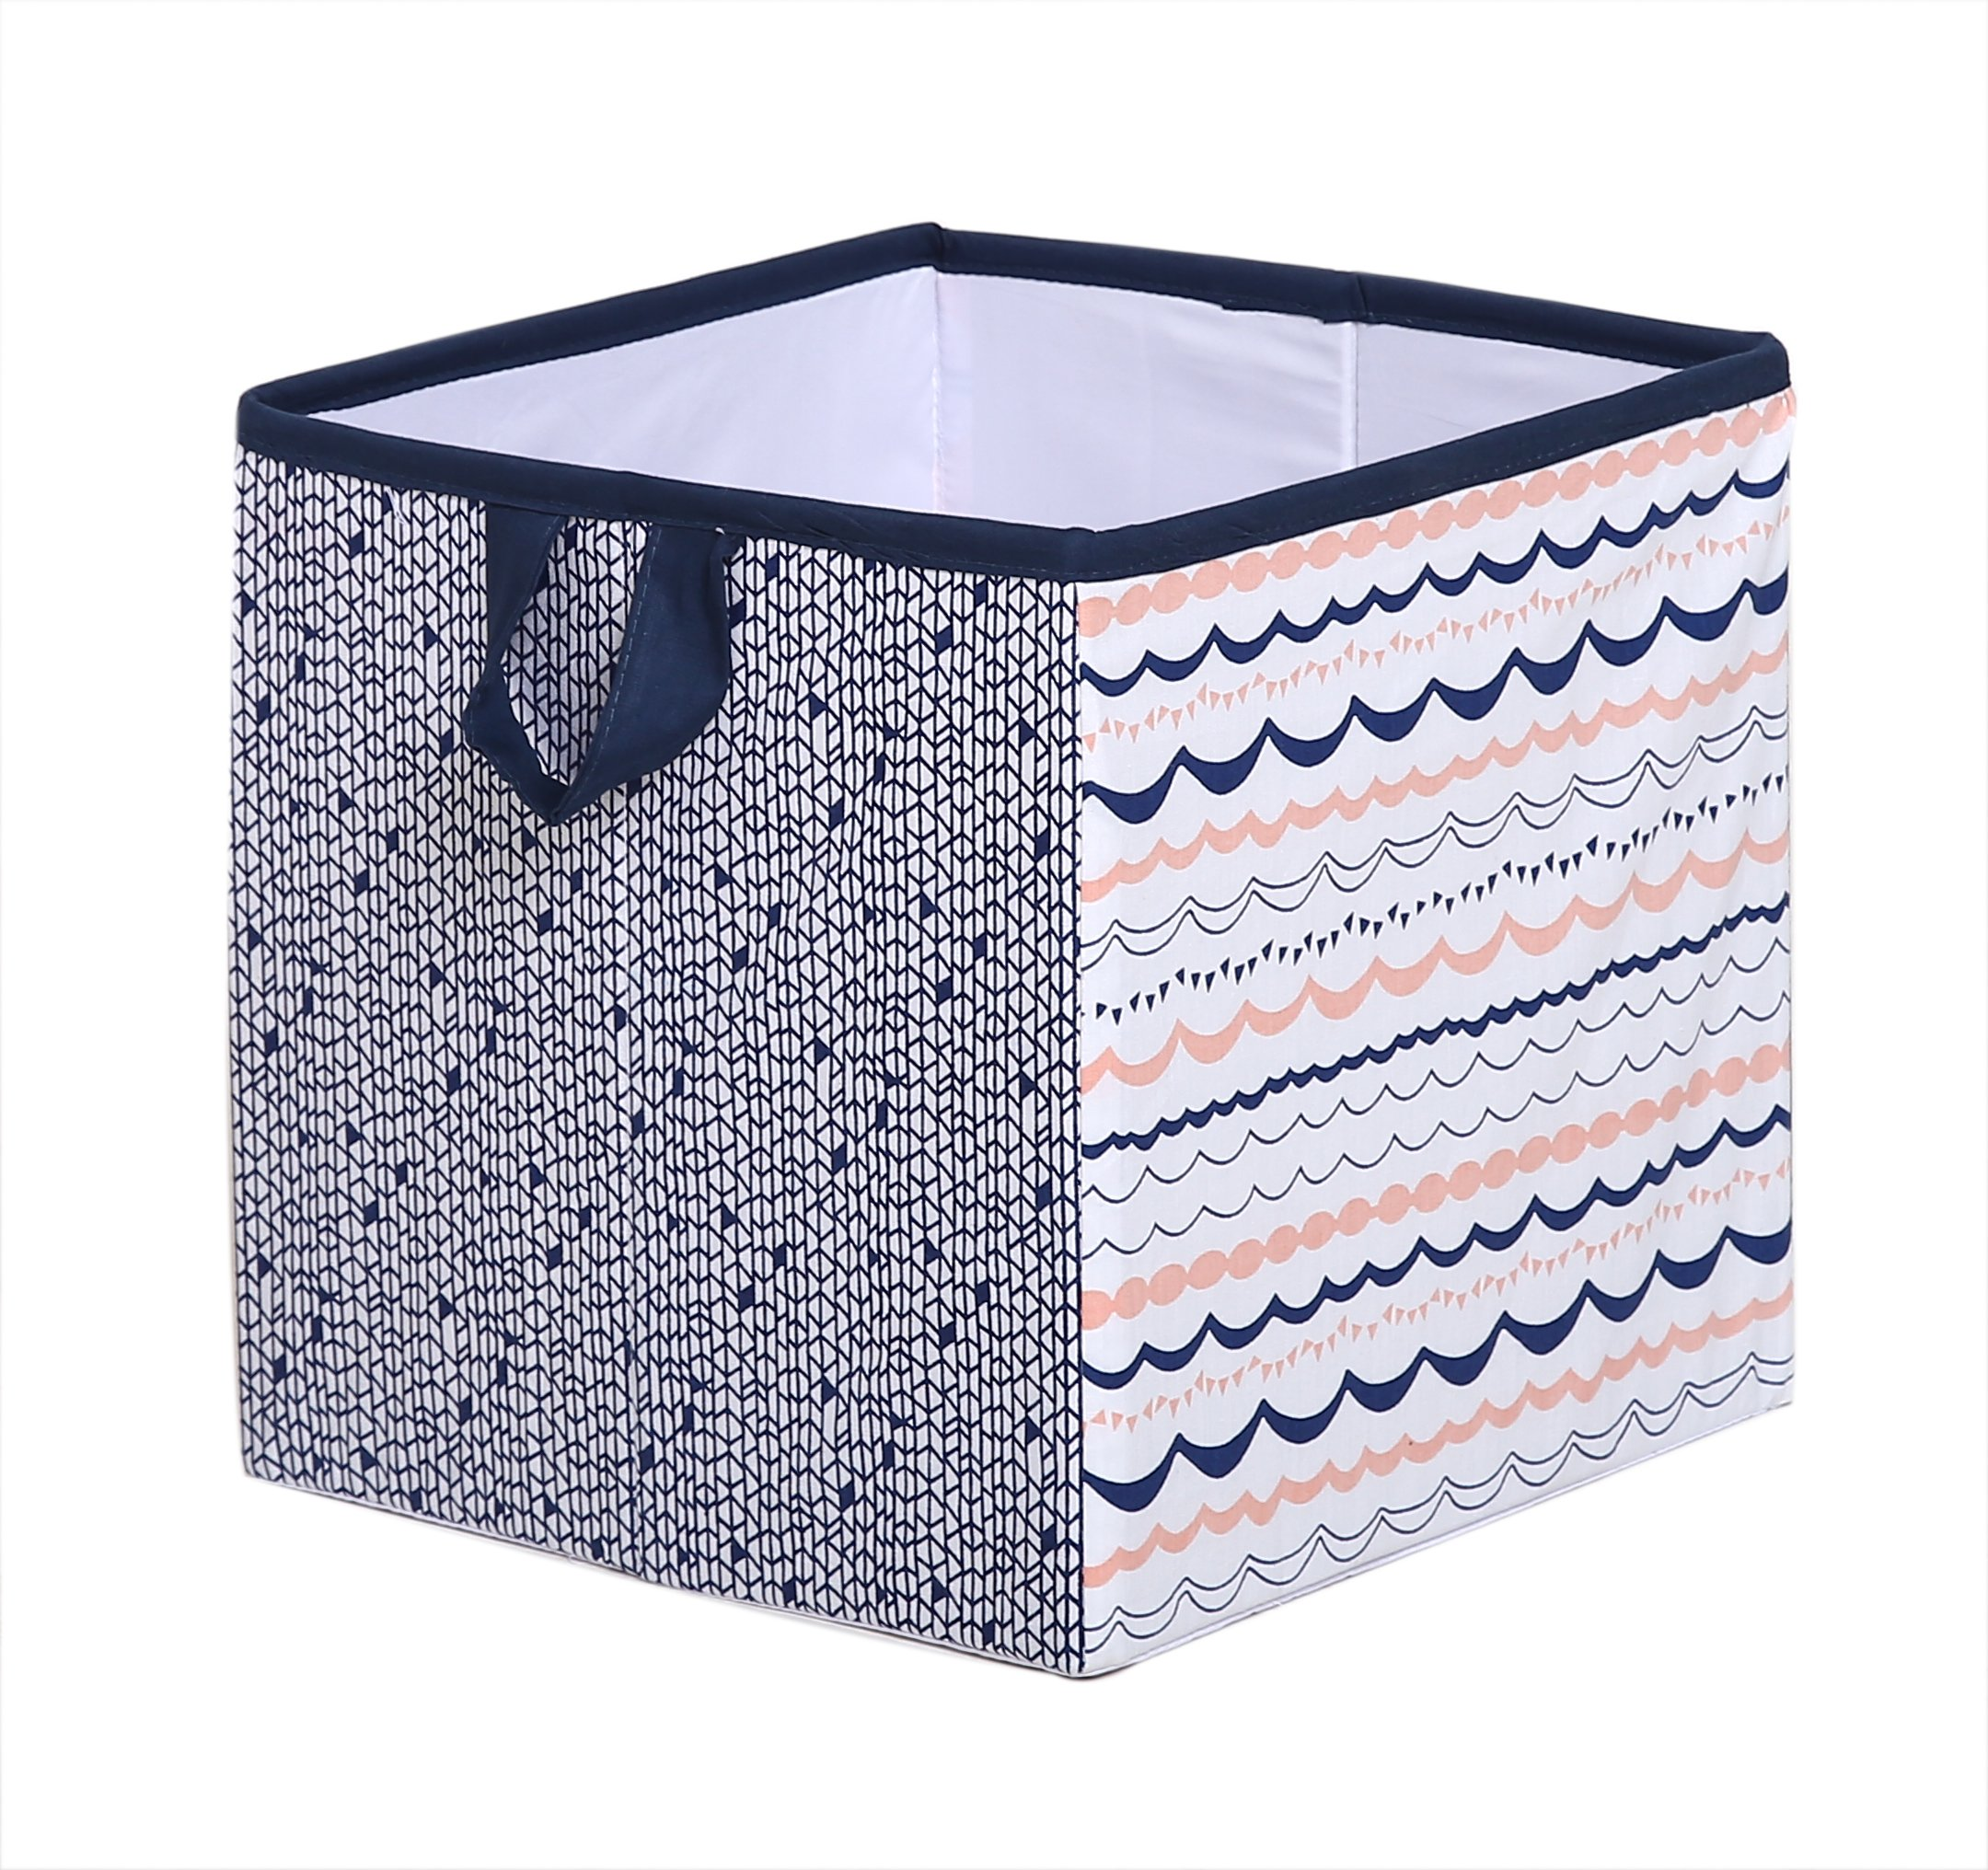 Tribal/Aztec Kids Storage (Small Tote 10 x 10 x 10 inches, Coral/Navy)